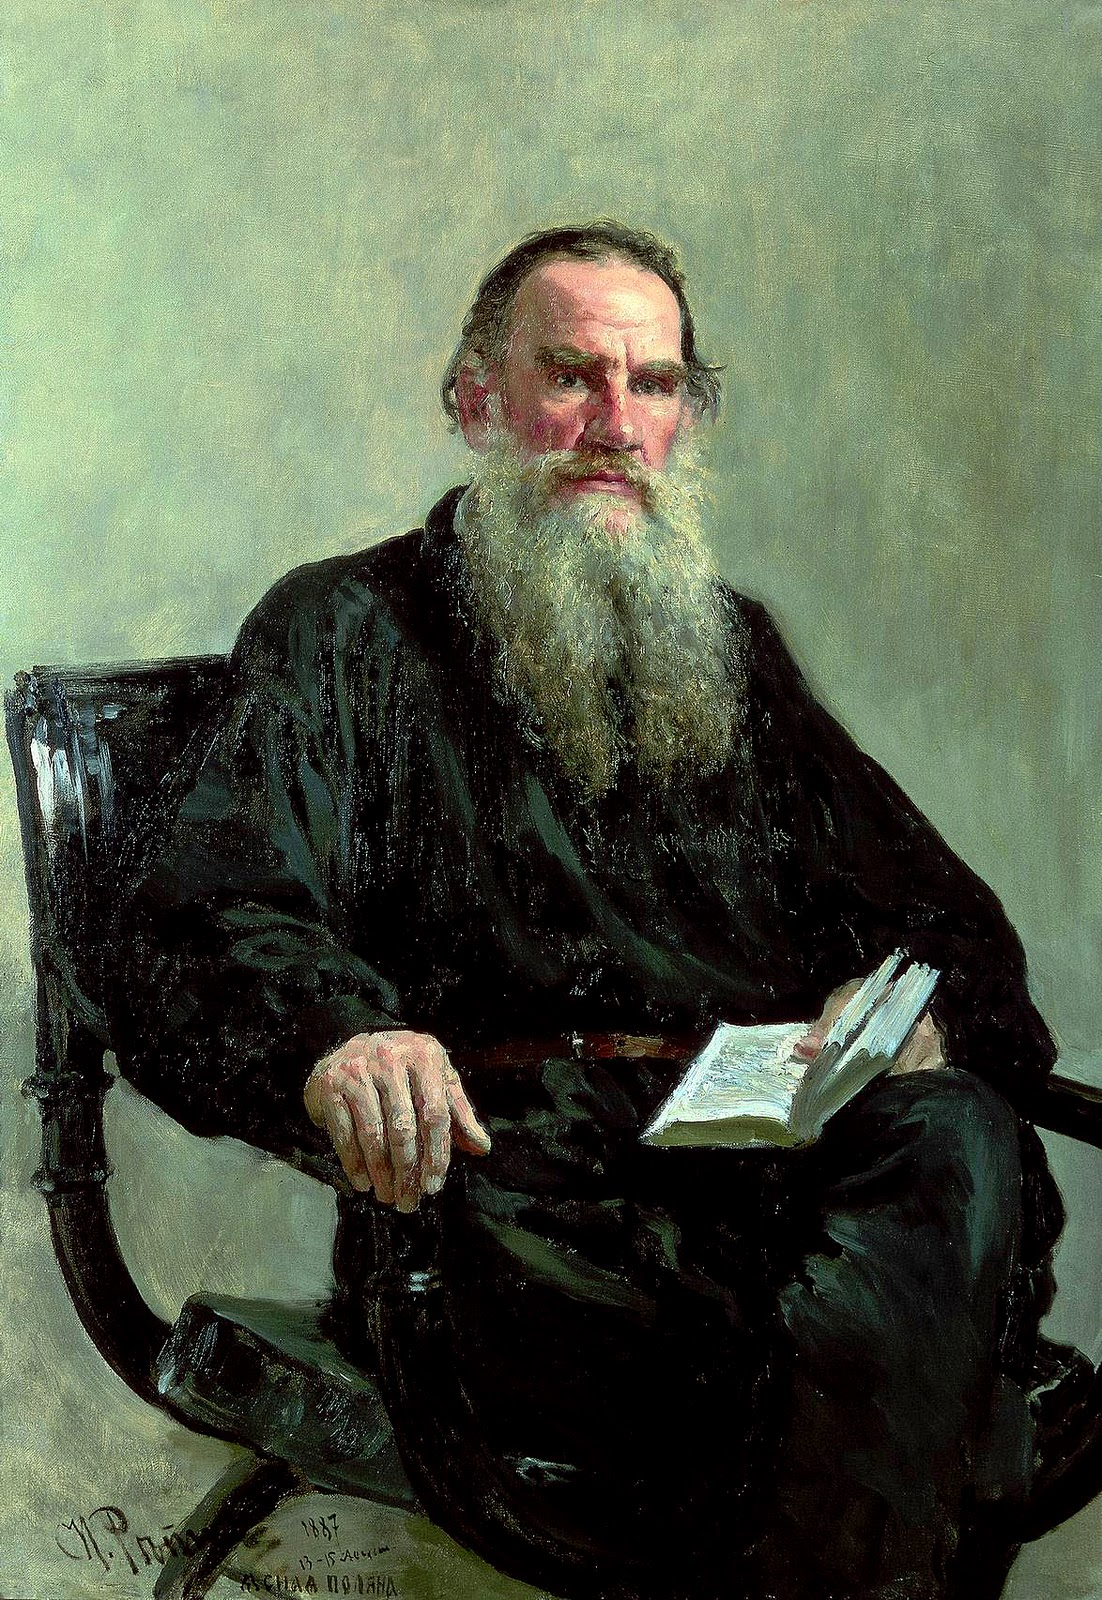 an analysis of the famous russian author leo tolstoy in war and peace I'm trying to find the best translation available on kindle as i live on an island with  no  war and peace is a novel by the russian author leo tolstoy, which is.